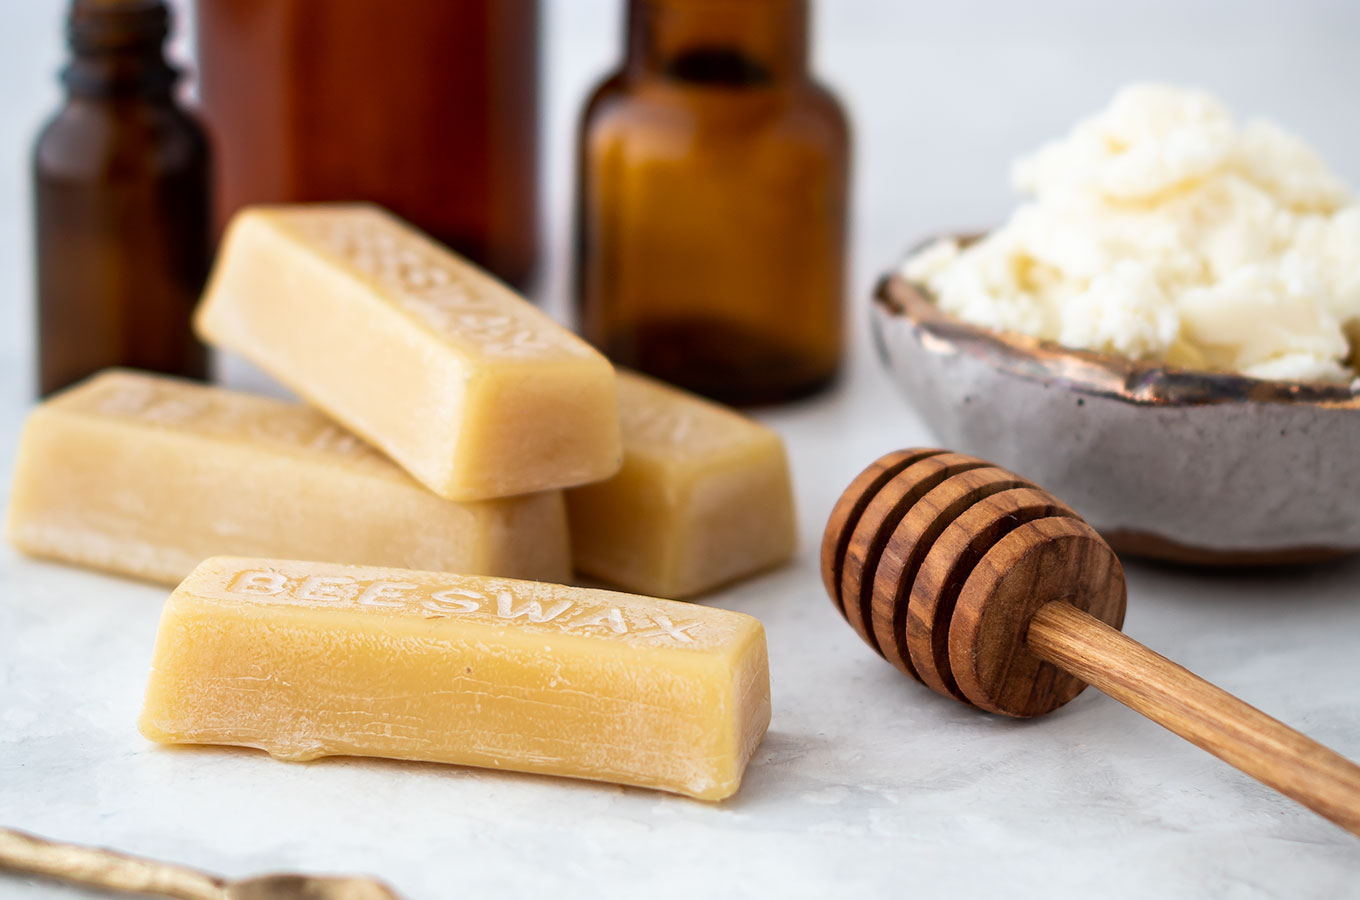 Bees wax and shea butter